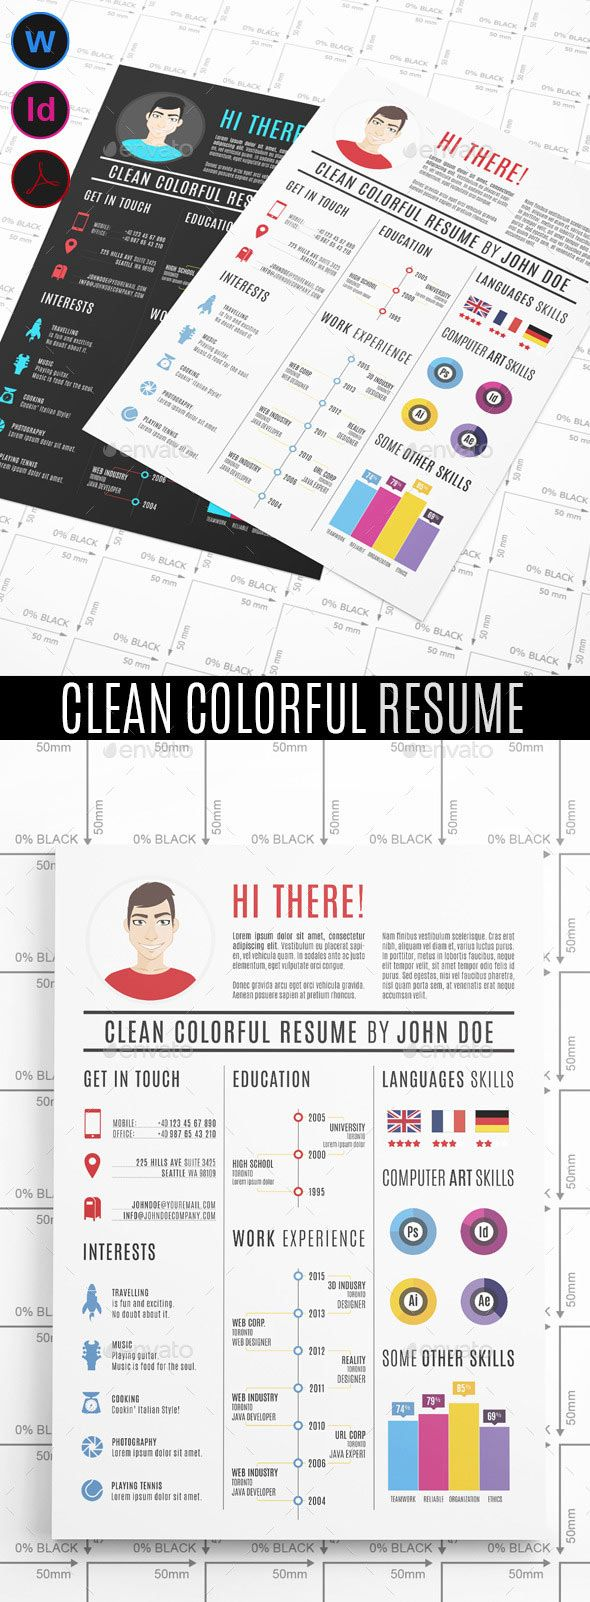 1212 best images about infographic visual resumes on pinterest